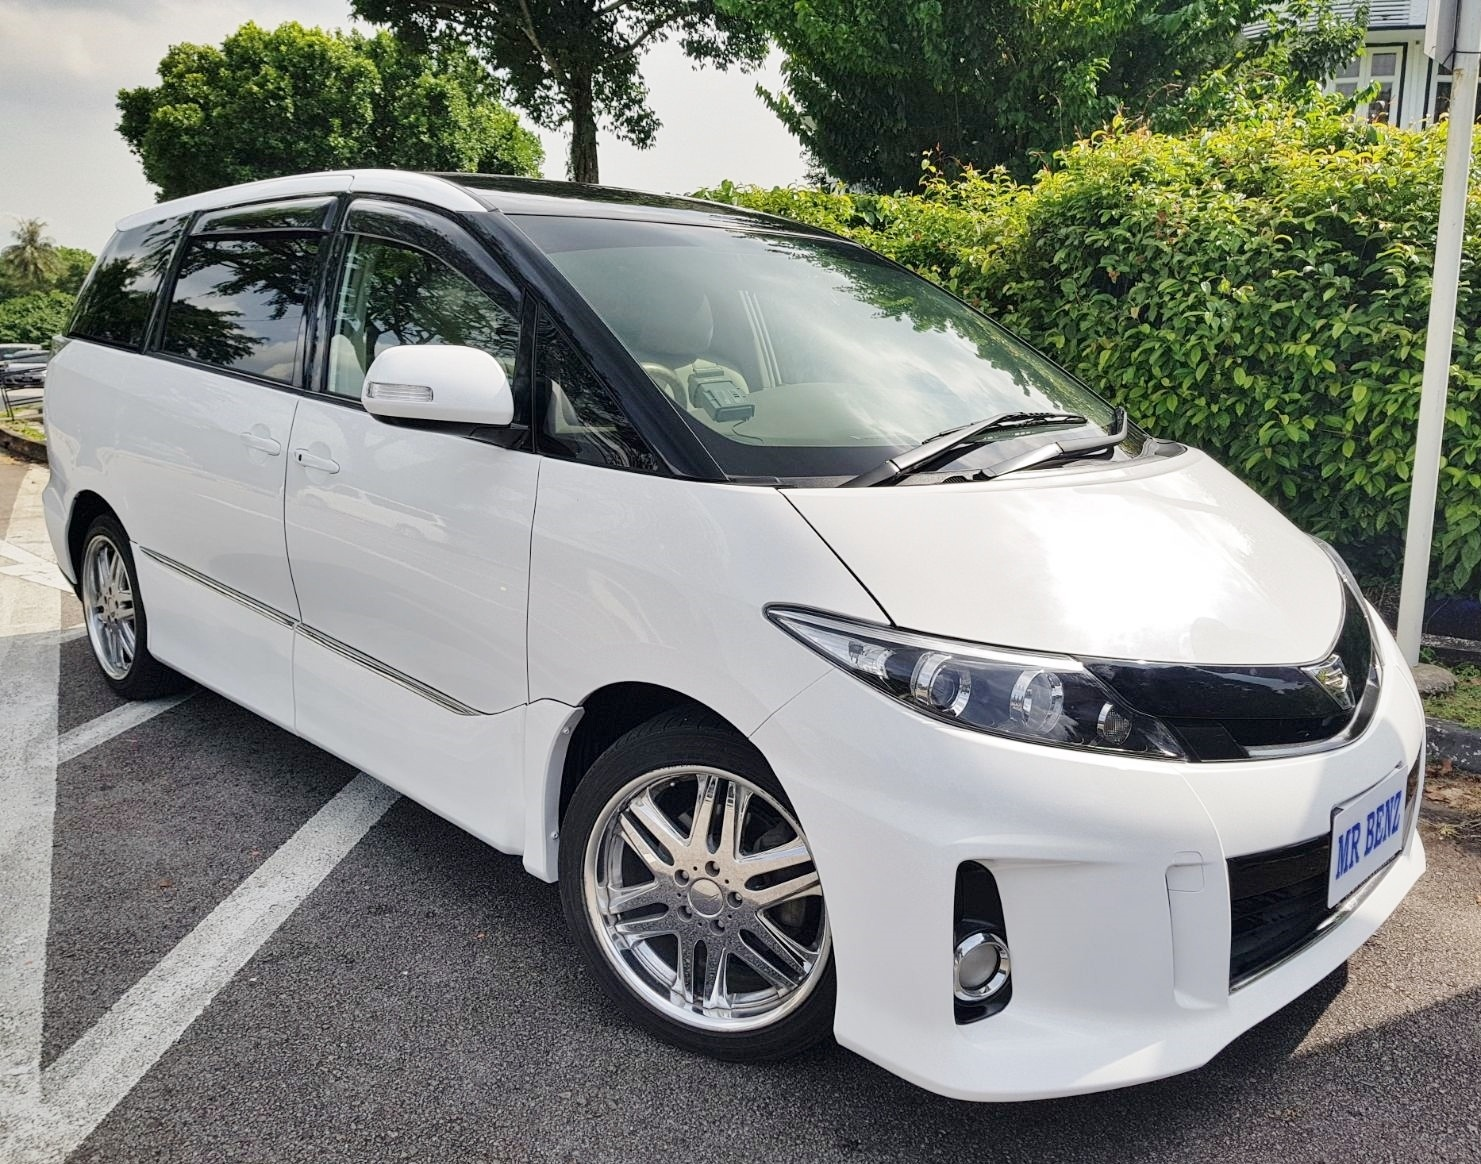 Toyota Estima 2 4 X 7 Seater Auto Cars Cars For Sale On Carousell